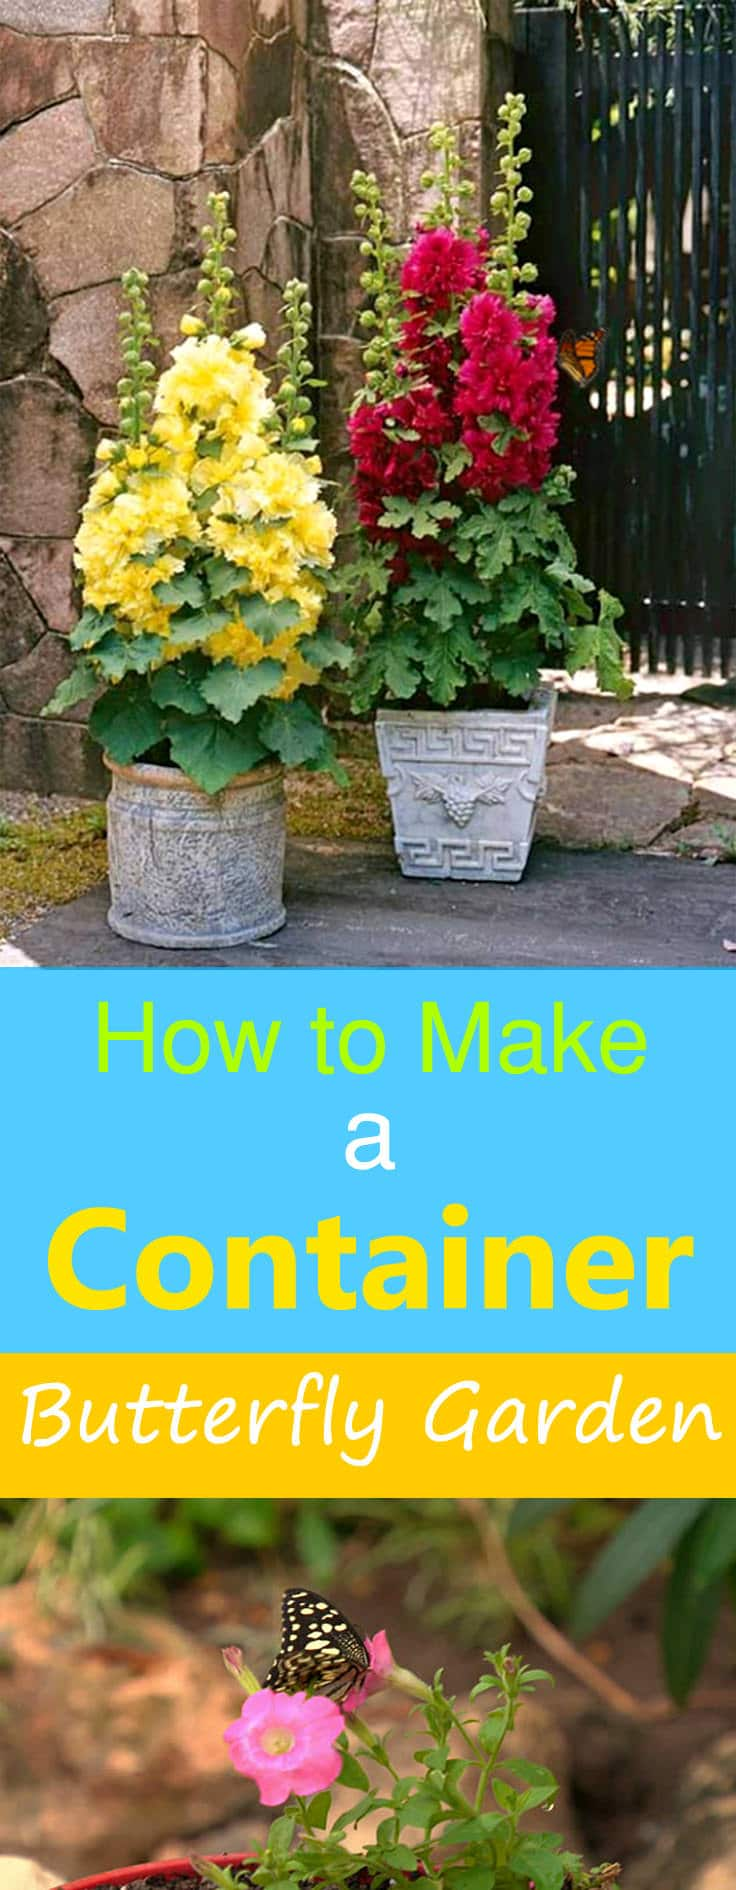 Even if you're short of space, making a butterfly garden in containers is possible with some of the amazing hacks in this article!